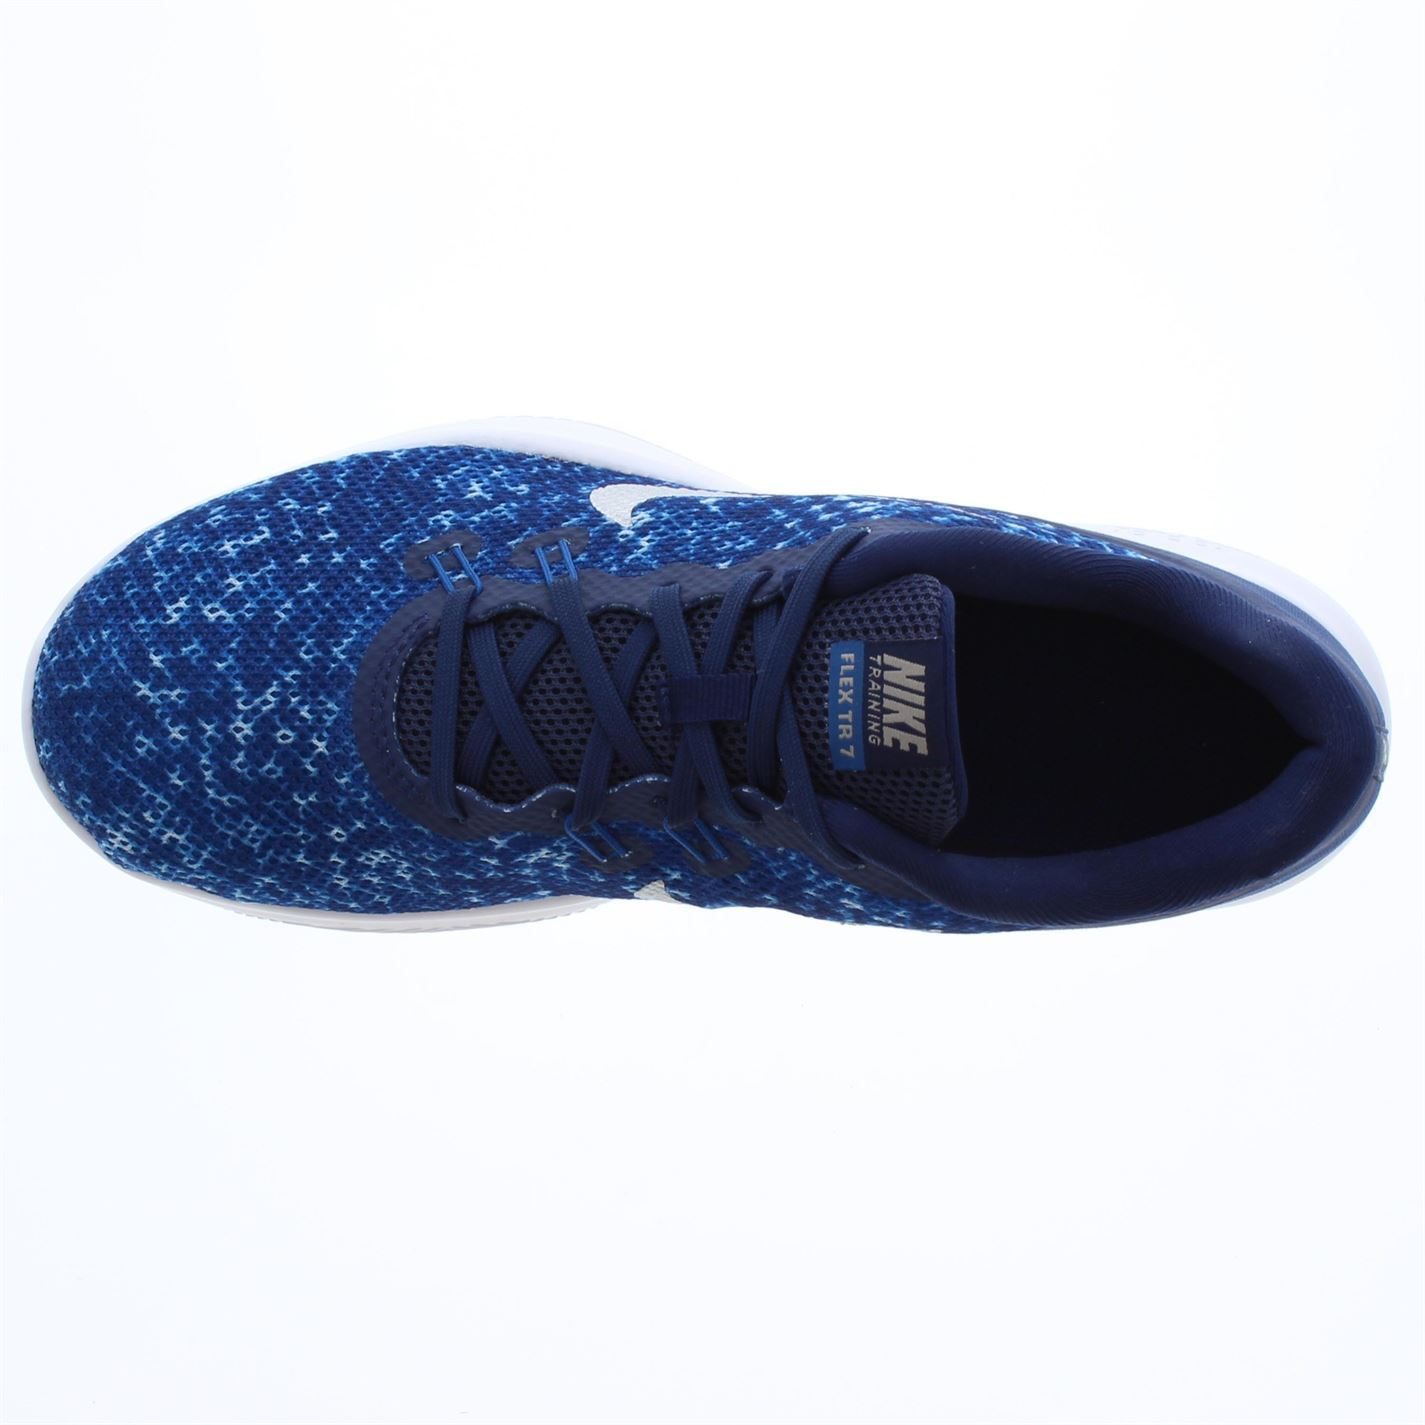 a3d72114e98 ... Nike Flex TR7 Print Fitness Training Shoes Womens Blue Silver Trainers  Sneakers